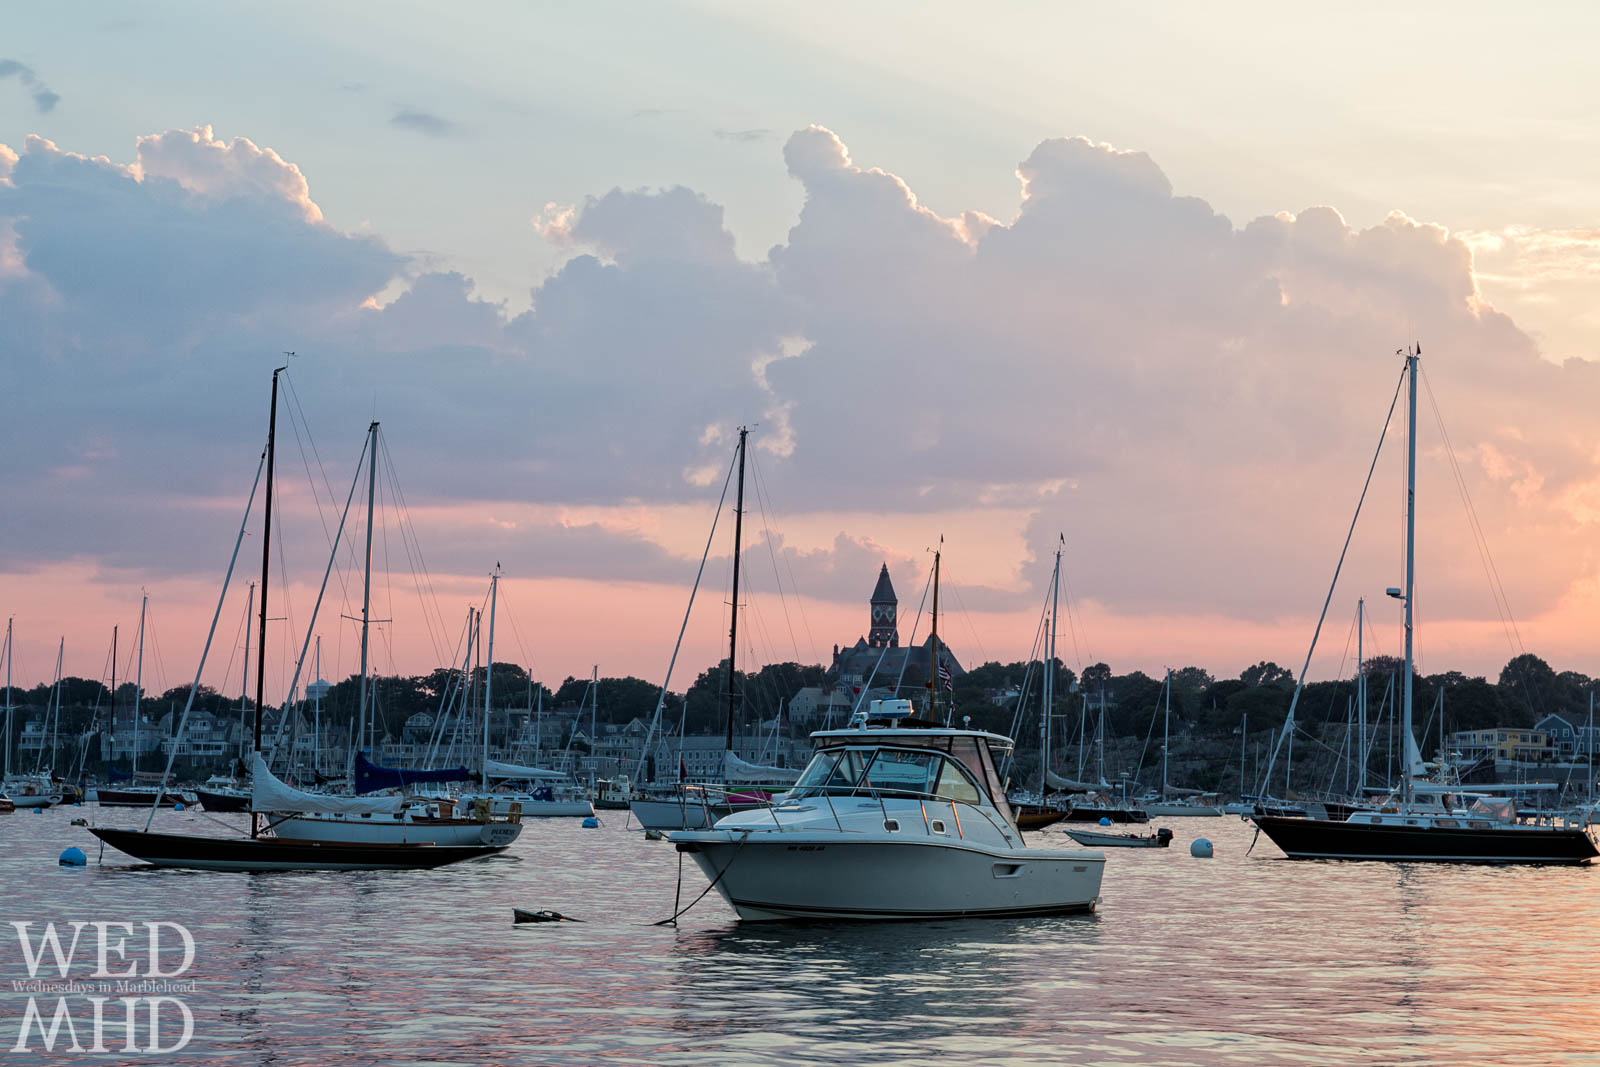 An impromptu harbor tour takes place on a mid-July evening with endless views of boats on their moorings and great light in the sky reflecting in the still waters